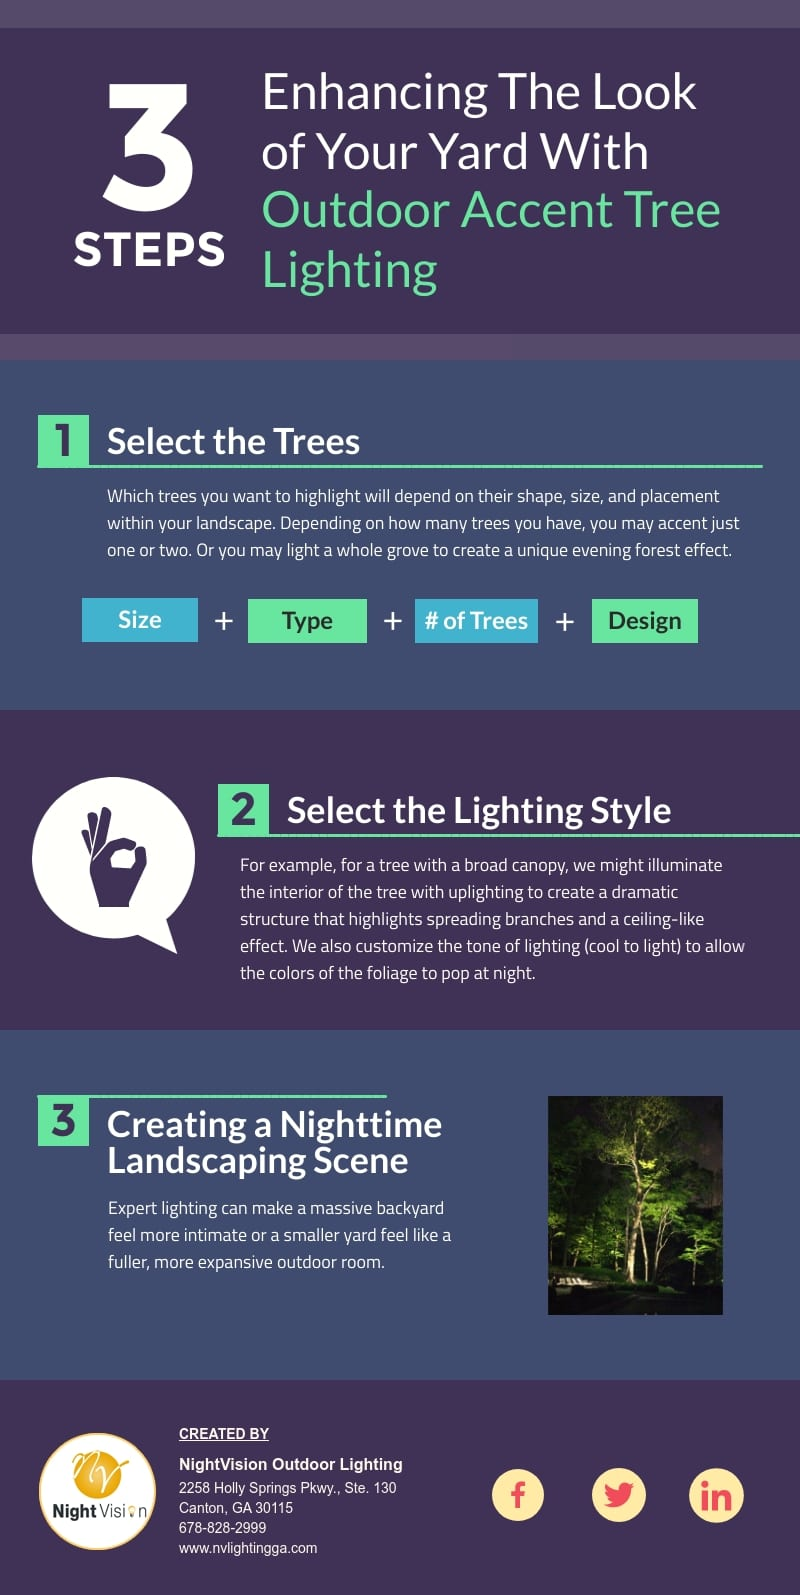 Enhancing The Look of Your Yard With Outdoor Accent Tree Lighting [infographic]